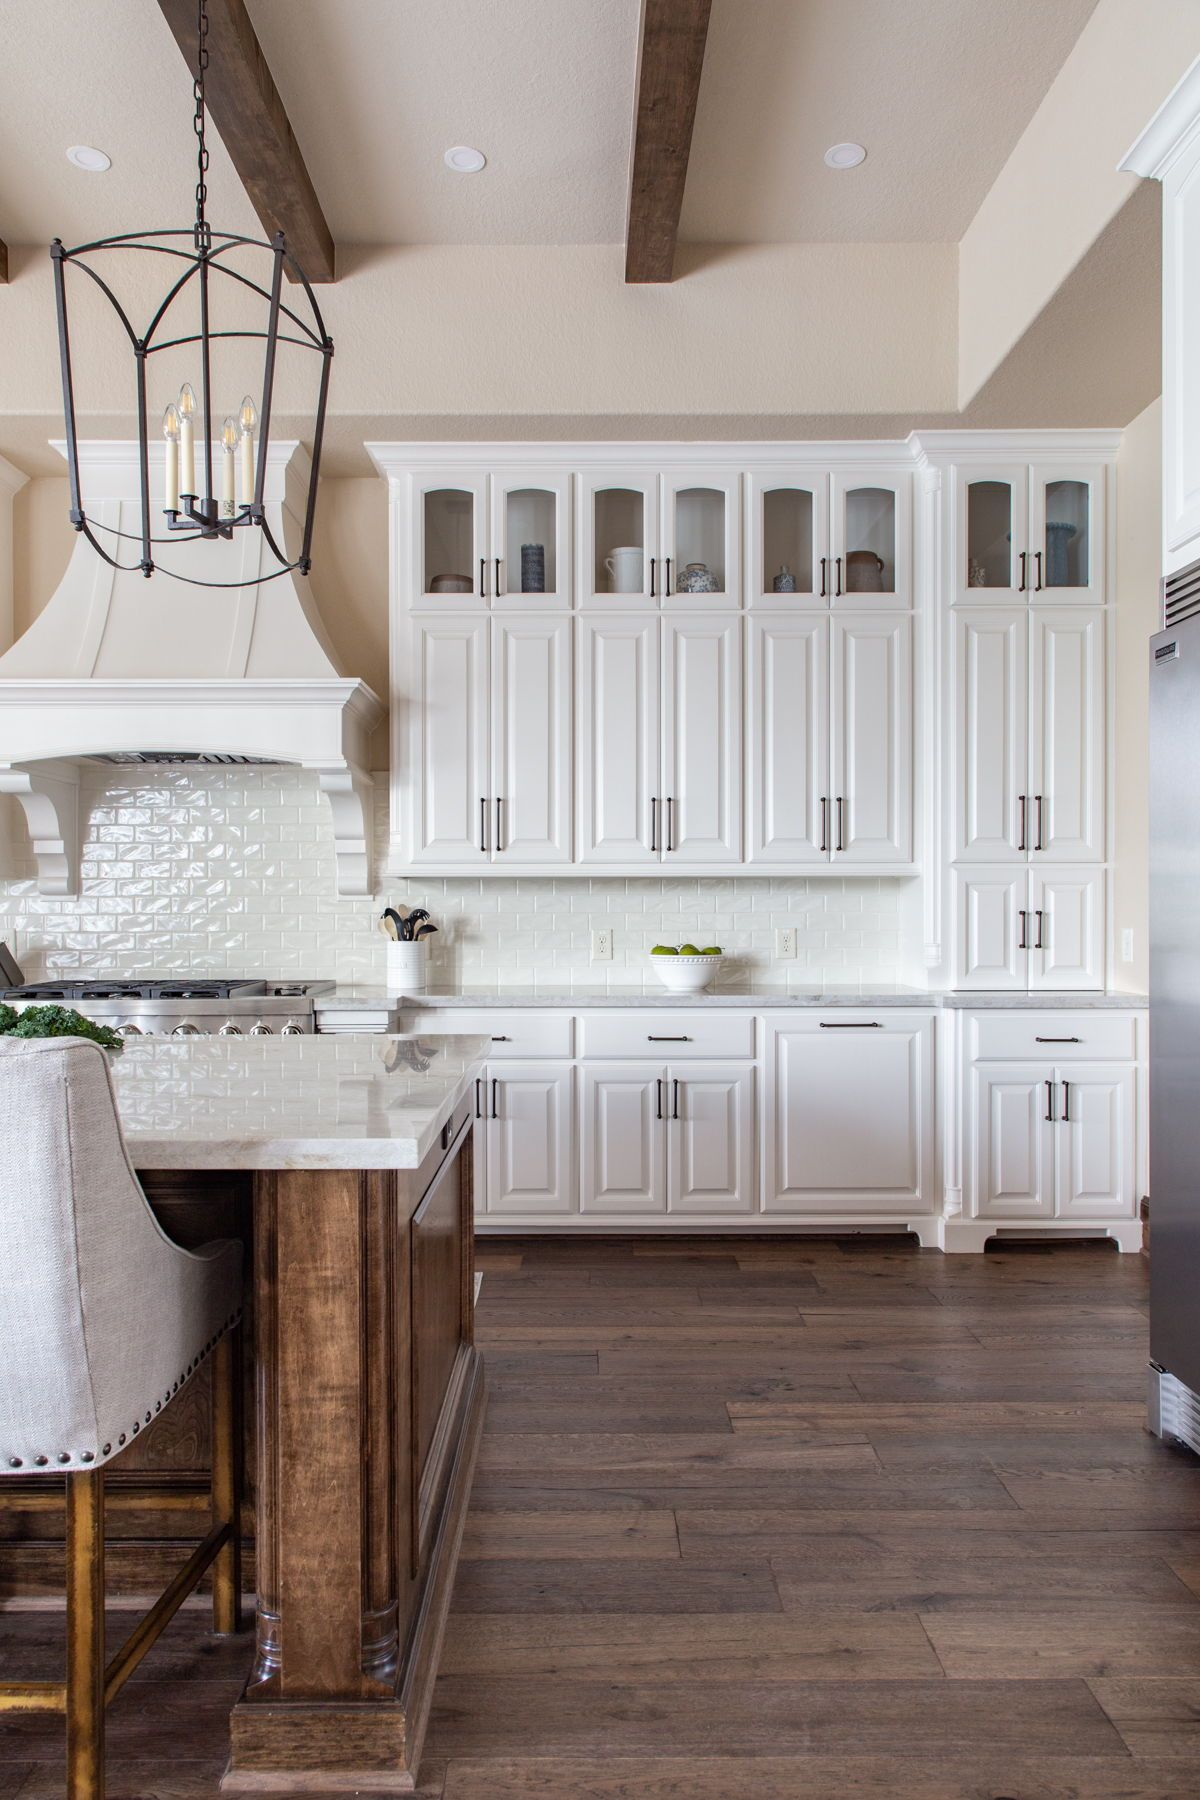 White Kitchen With Stained Island Farmhouse Kitchen In White Farmhouse Style Kitchen Cabinets White Kitchen Rustic Farmhouse Style Kitchen White kitchen cabinets with island